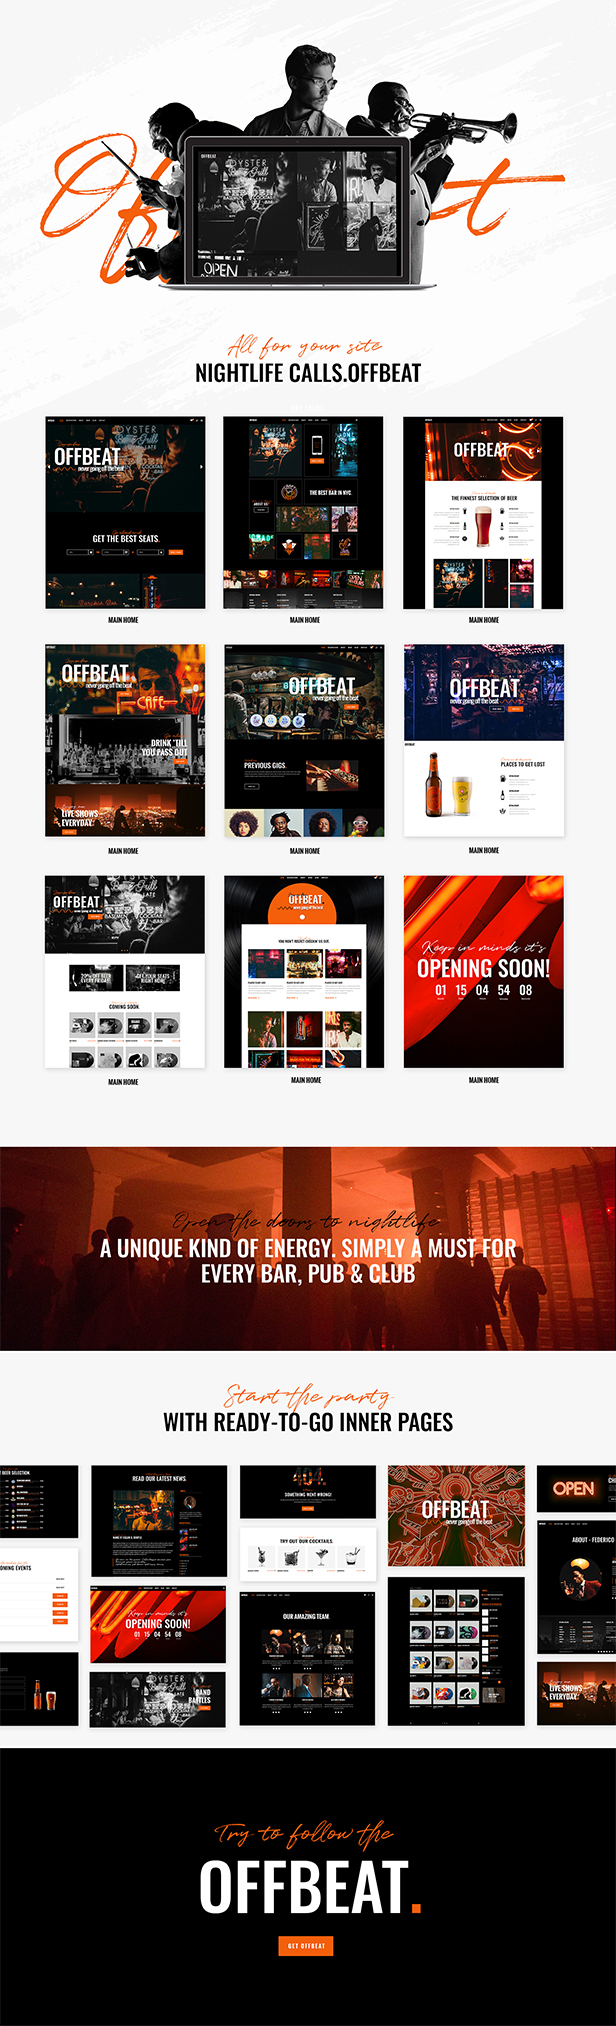 WordPress theme Offbeat - A Theme Made for Jazz Bars and Pubs (Nightlife)